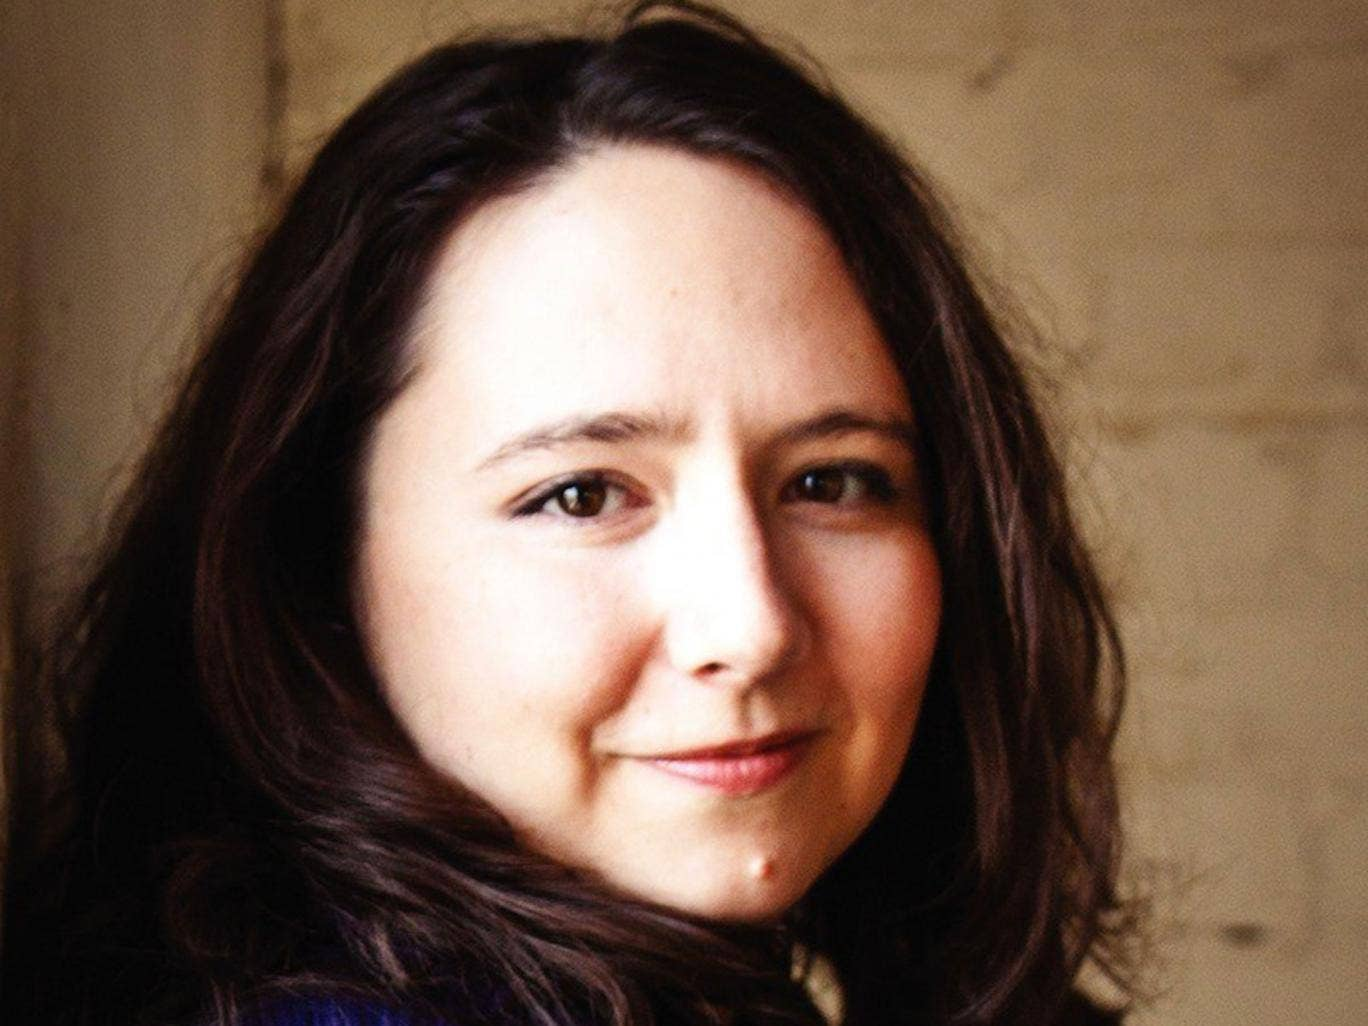 Amanda Coplin: In her fatalistic view, there are no chocolate-box endings